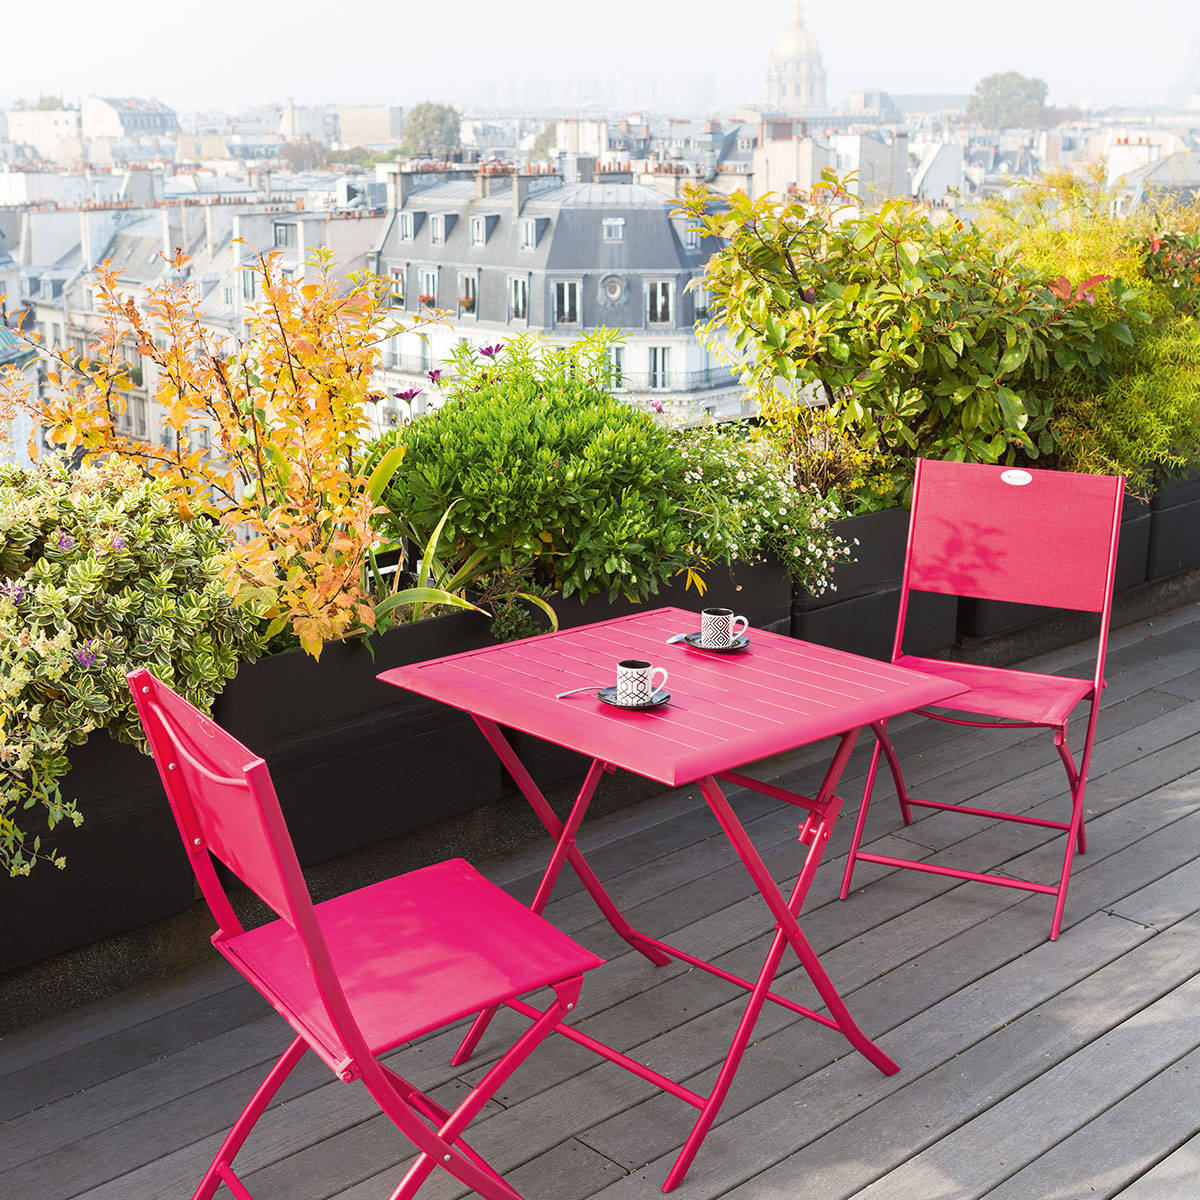 Table de balcon pliante carr e azua cerise hesp ride 2 places - Table de salon pliante ...